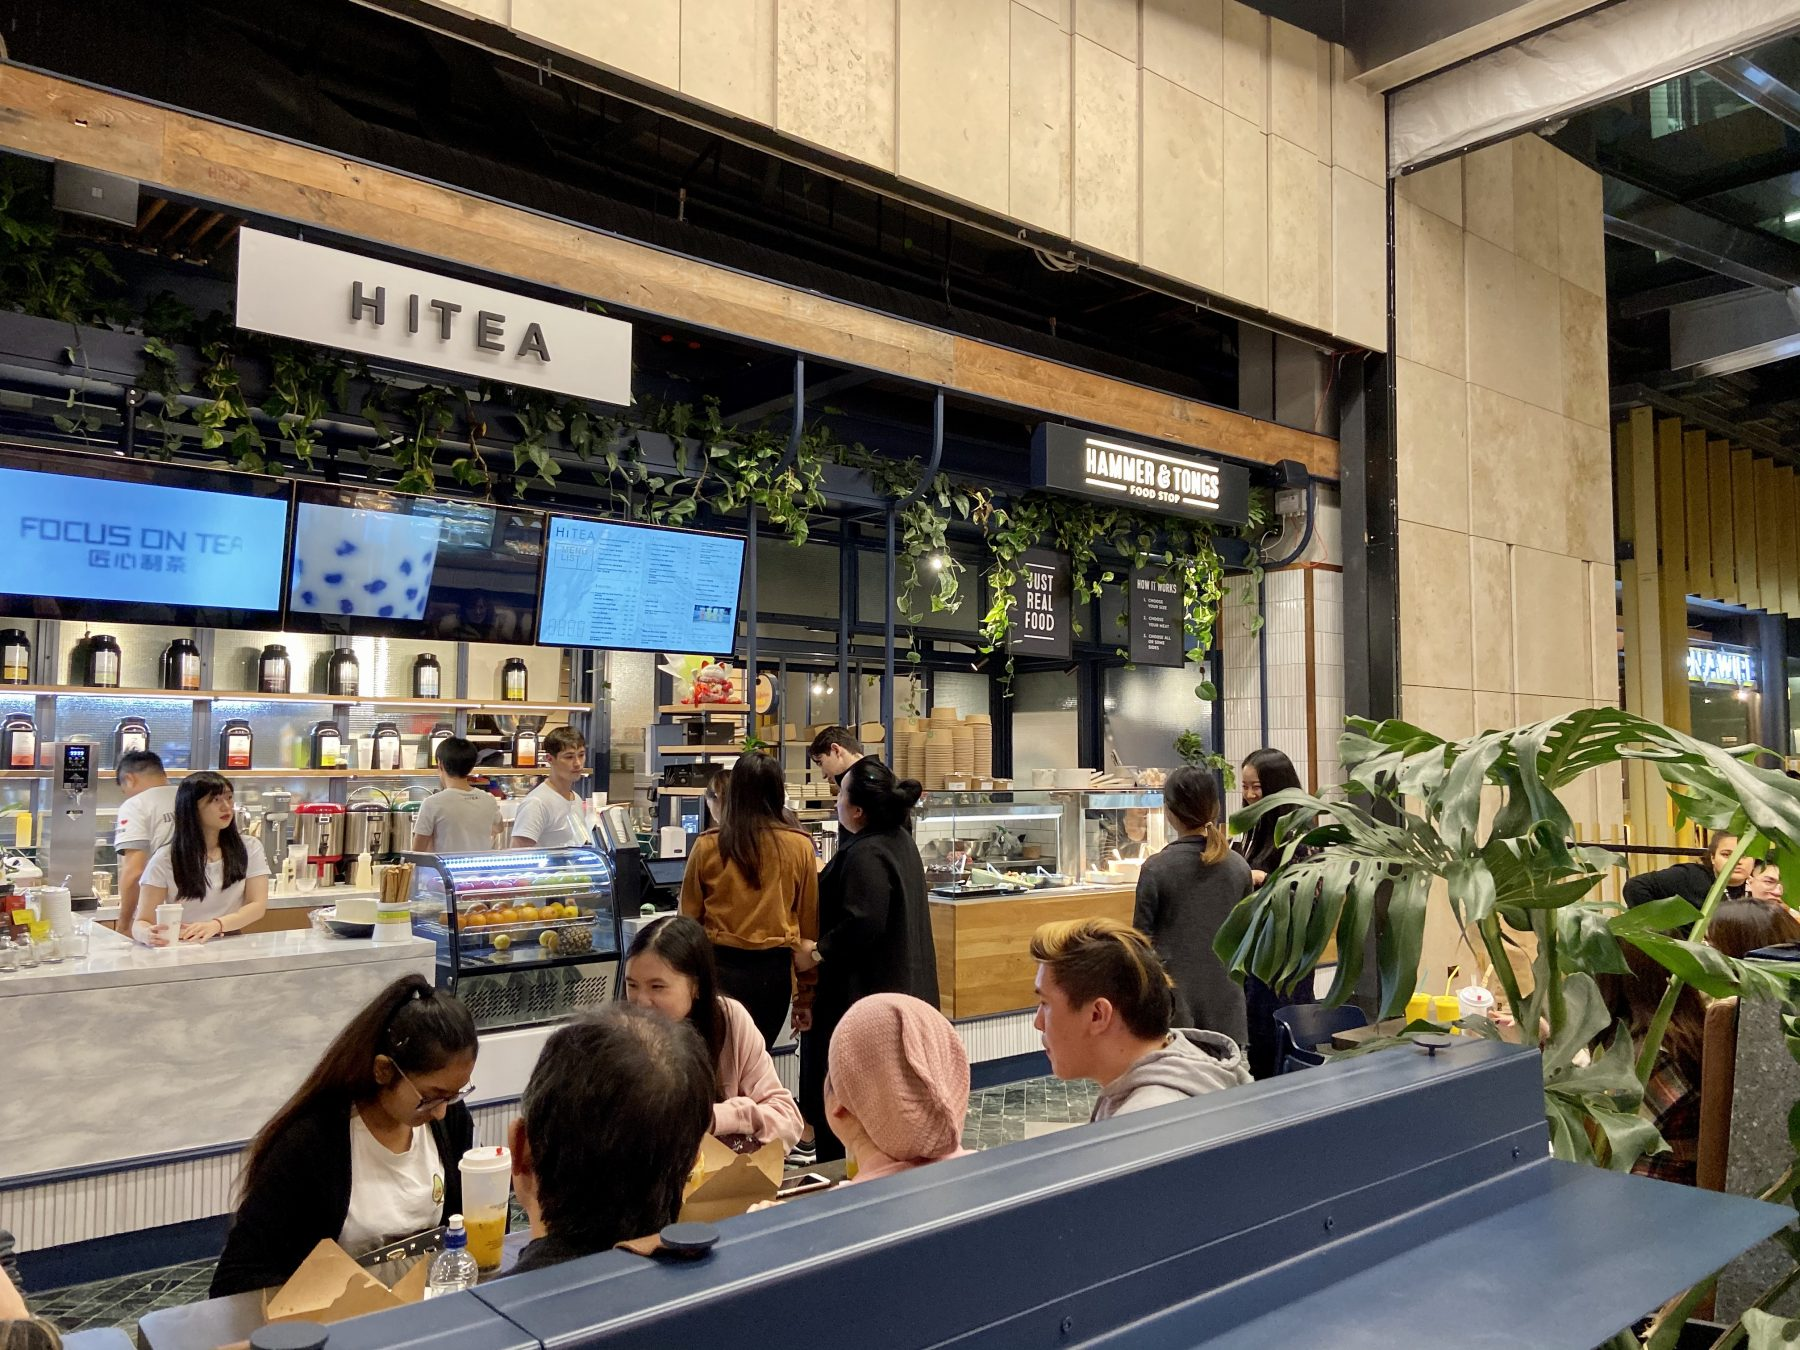 Hitea Restaurant - Commercial Bay Waterfront (Auckland) - Where To Go